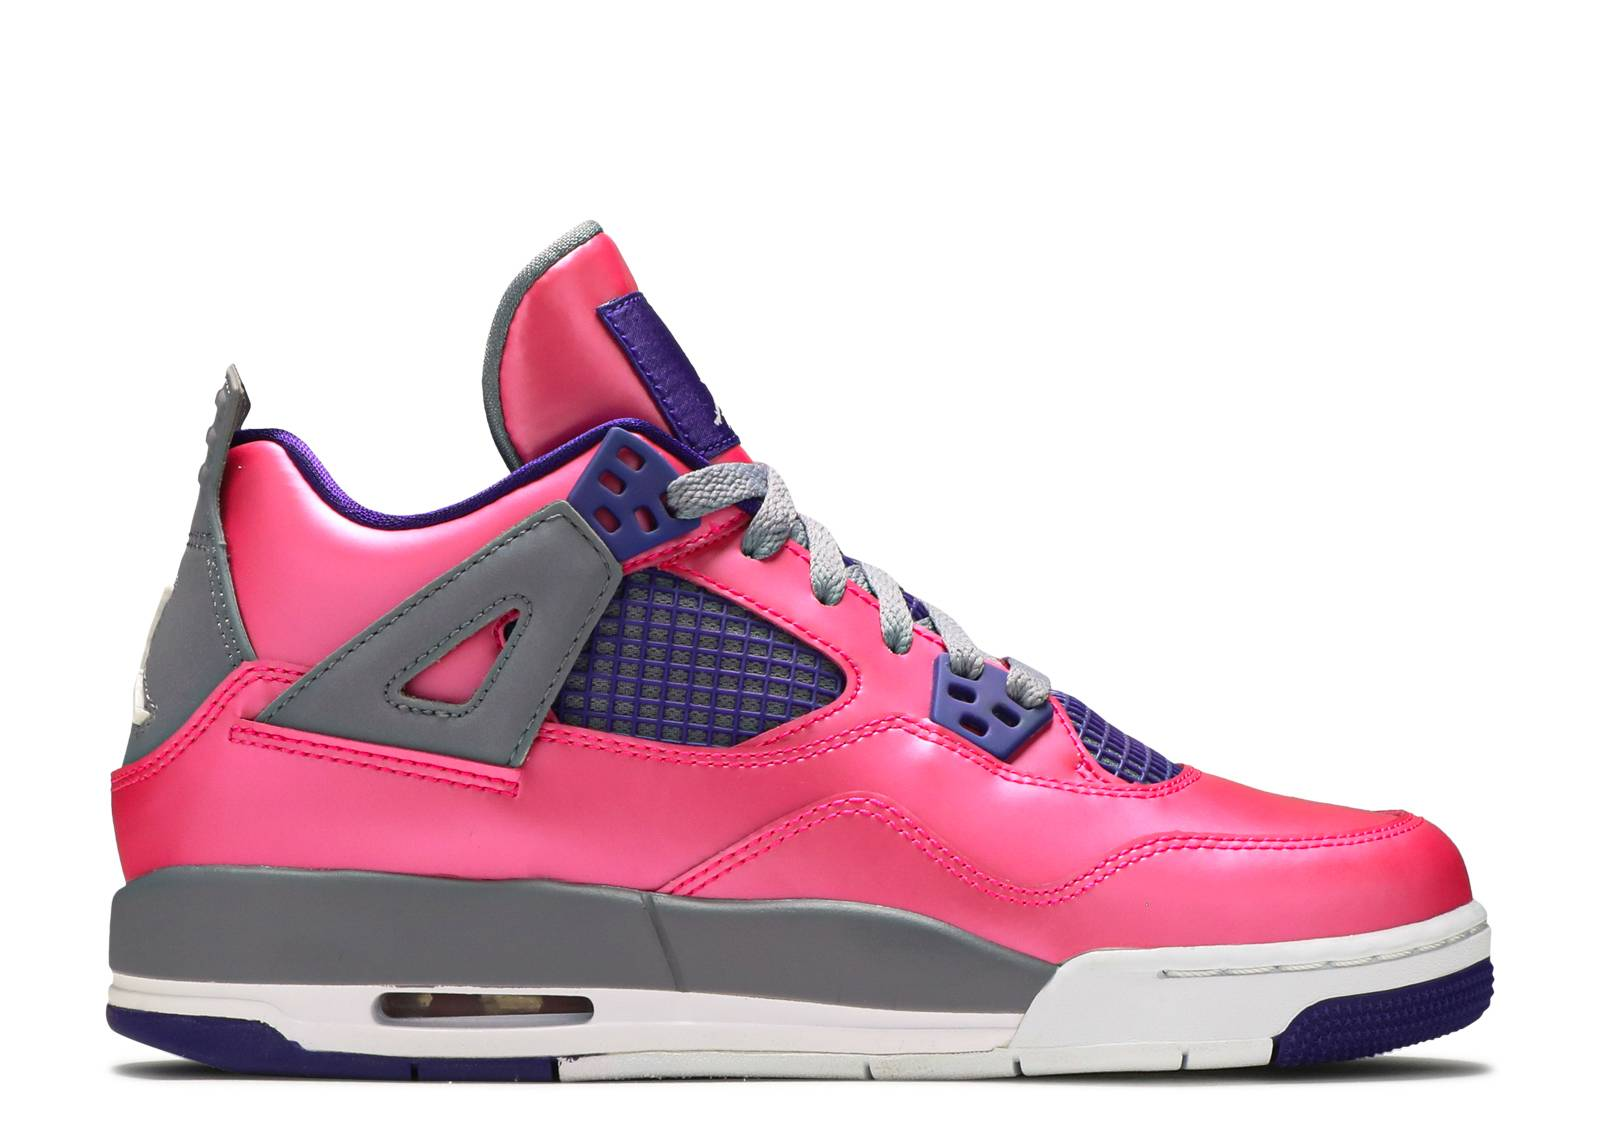 a642e517ea71 Girls Air Jordan 4 Retro Gs